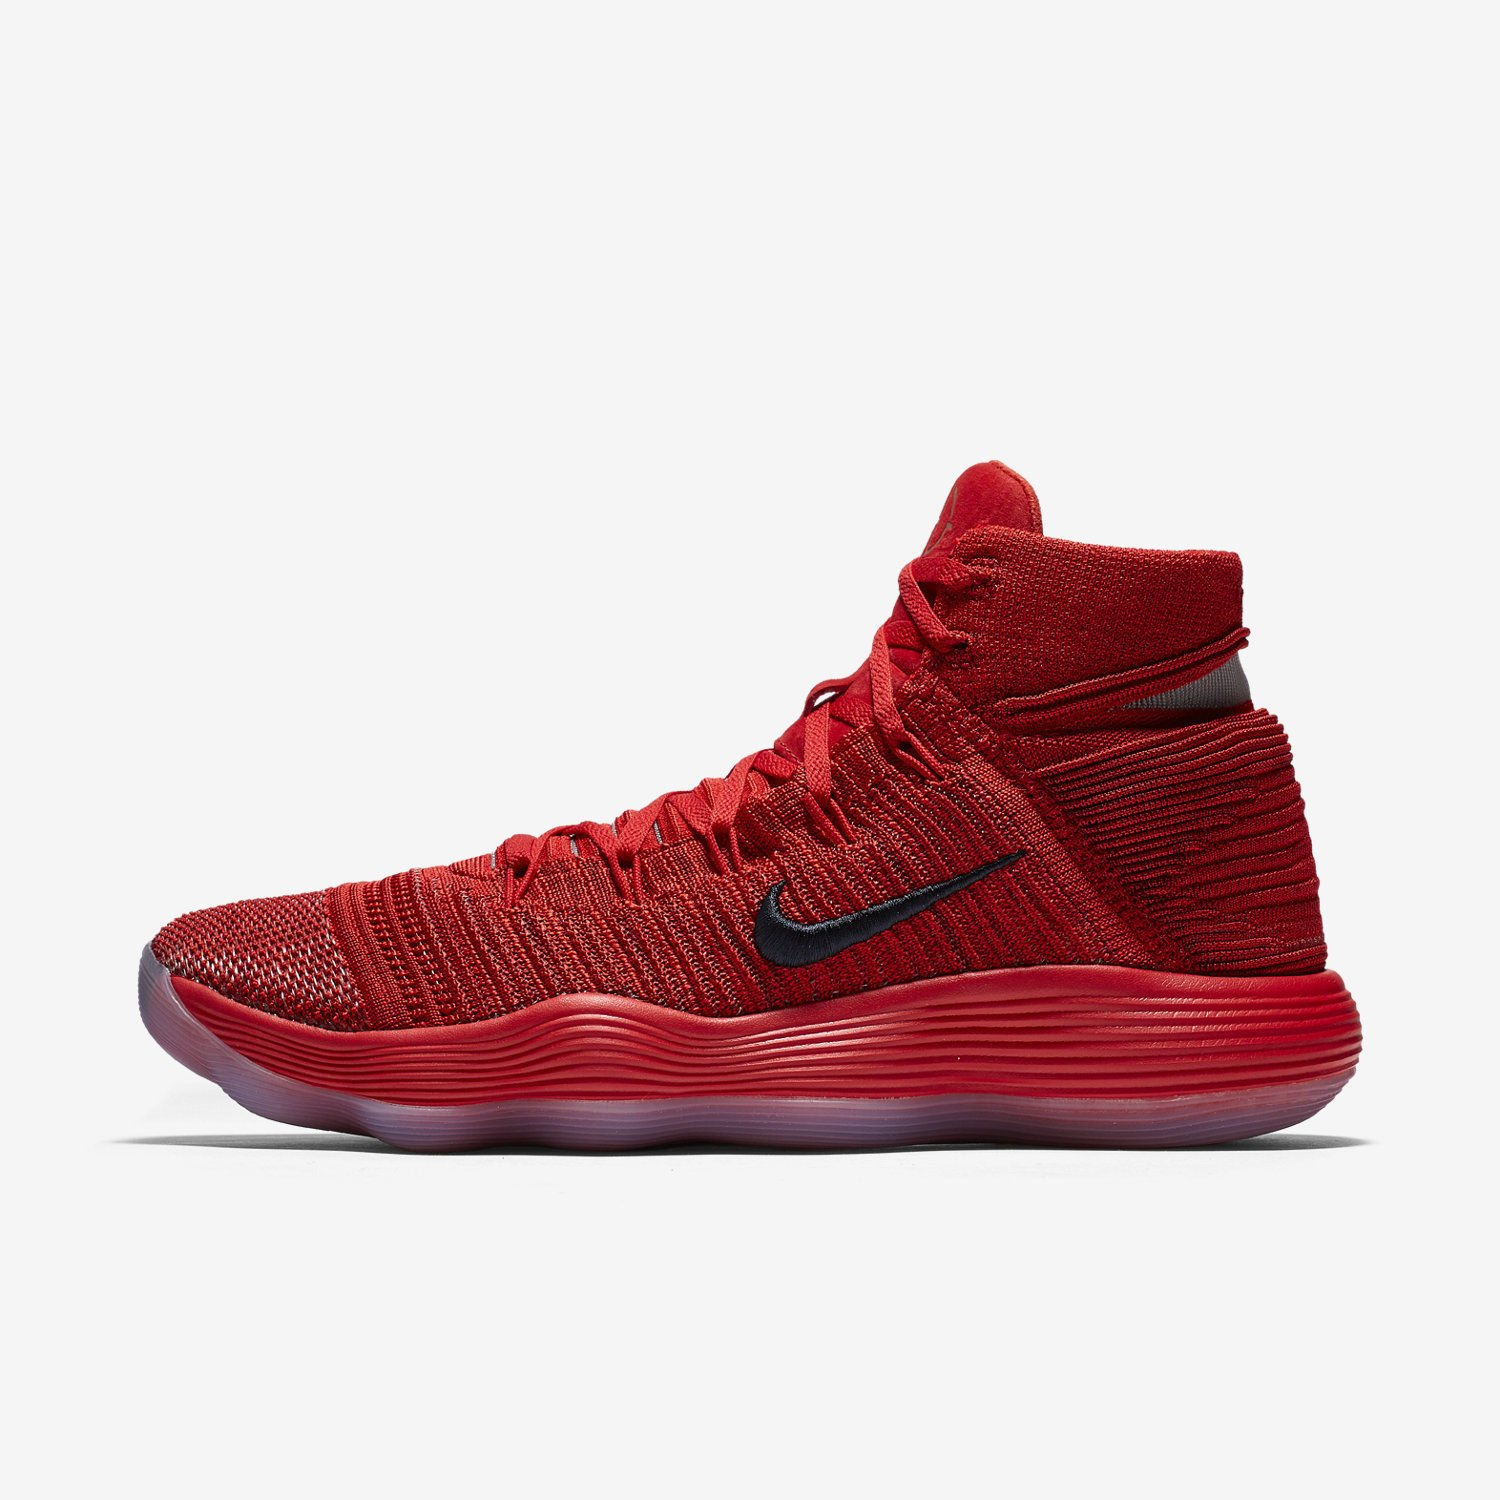 cbd9eab83d0d Details about Nike React Hyperdunk 2017 Flyknit EP Basketball Shoes  917727-600 University Red